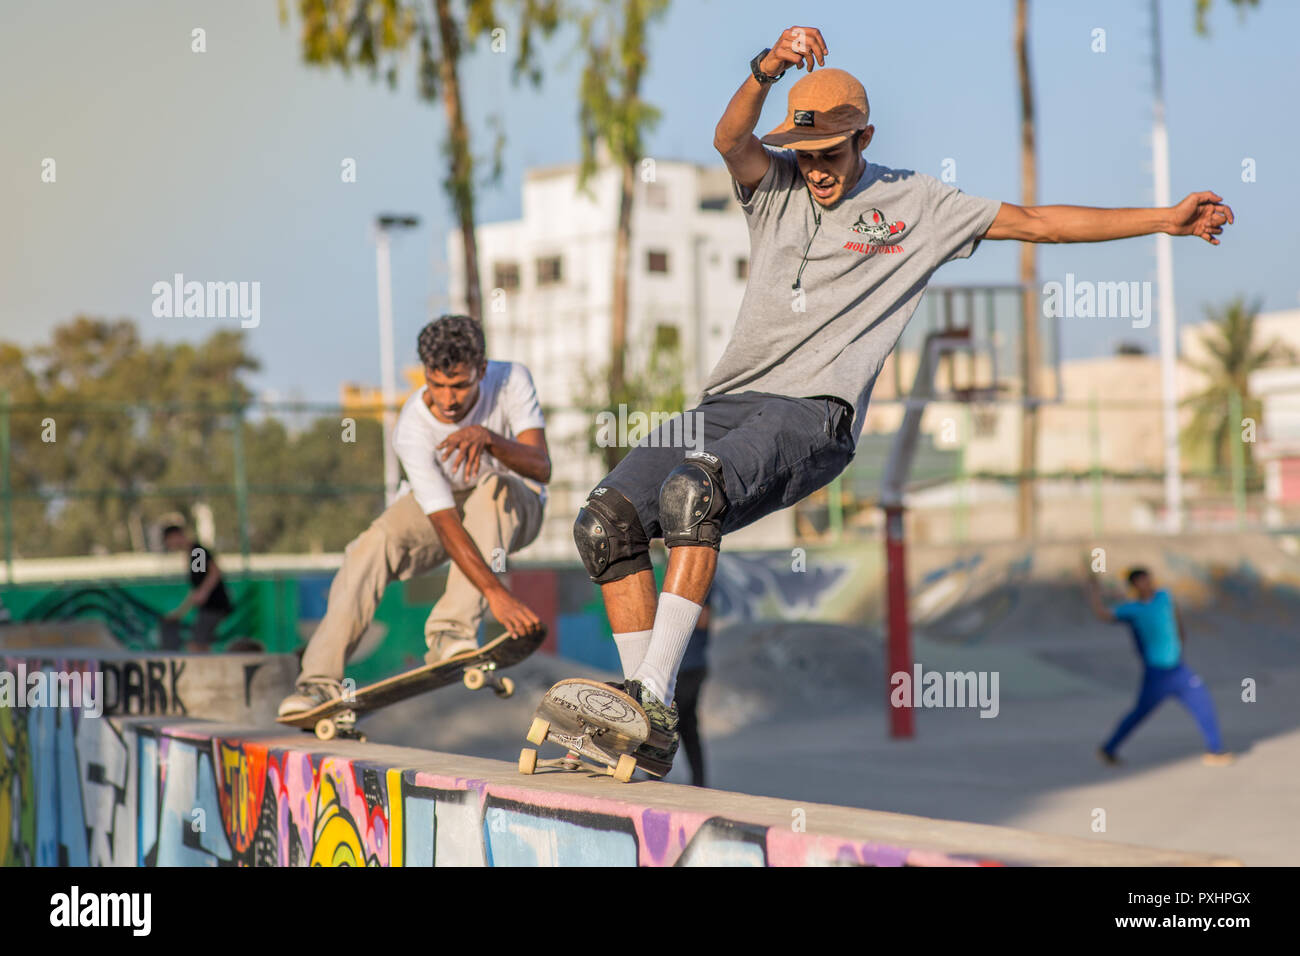 Two Indian skateboarders at a skatepark in Bangalore. - Stock Image